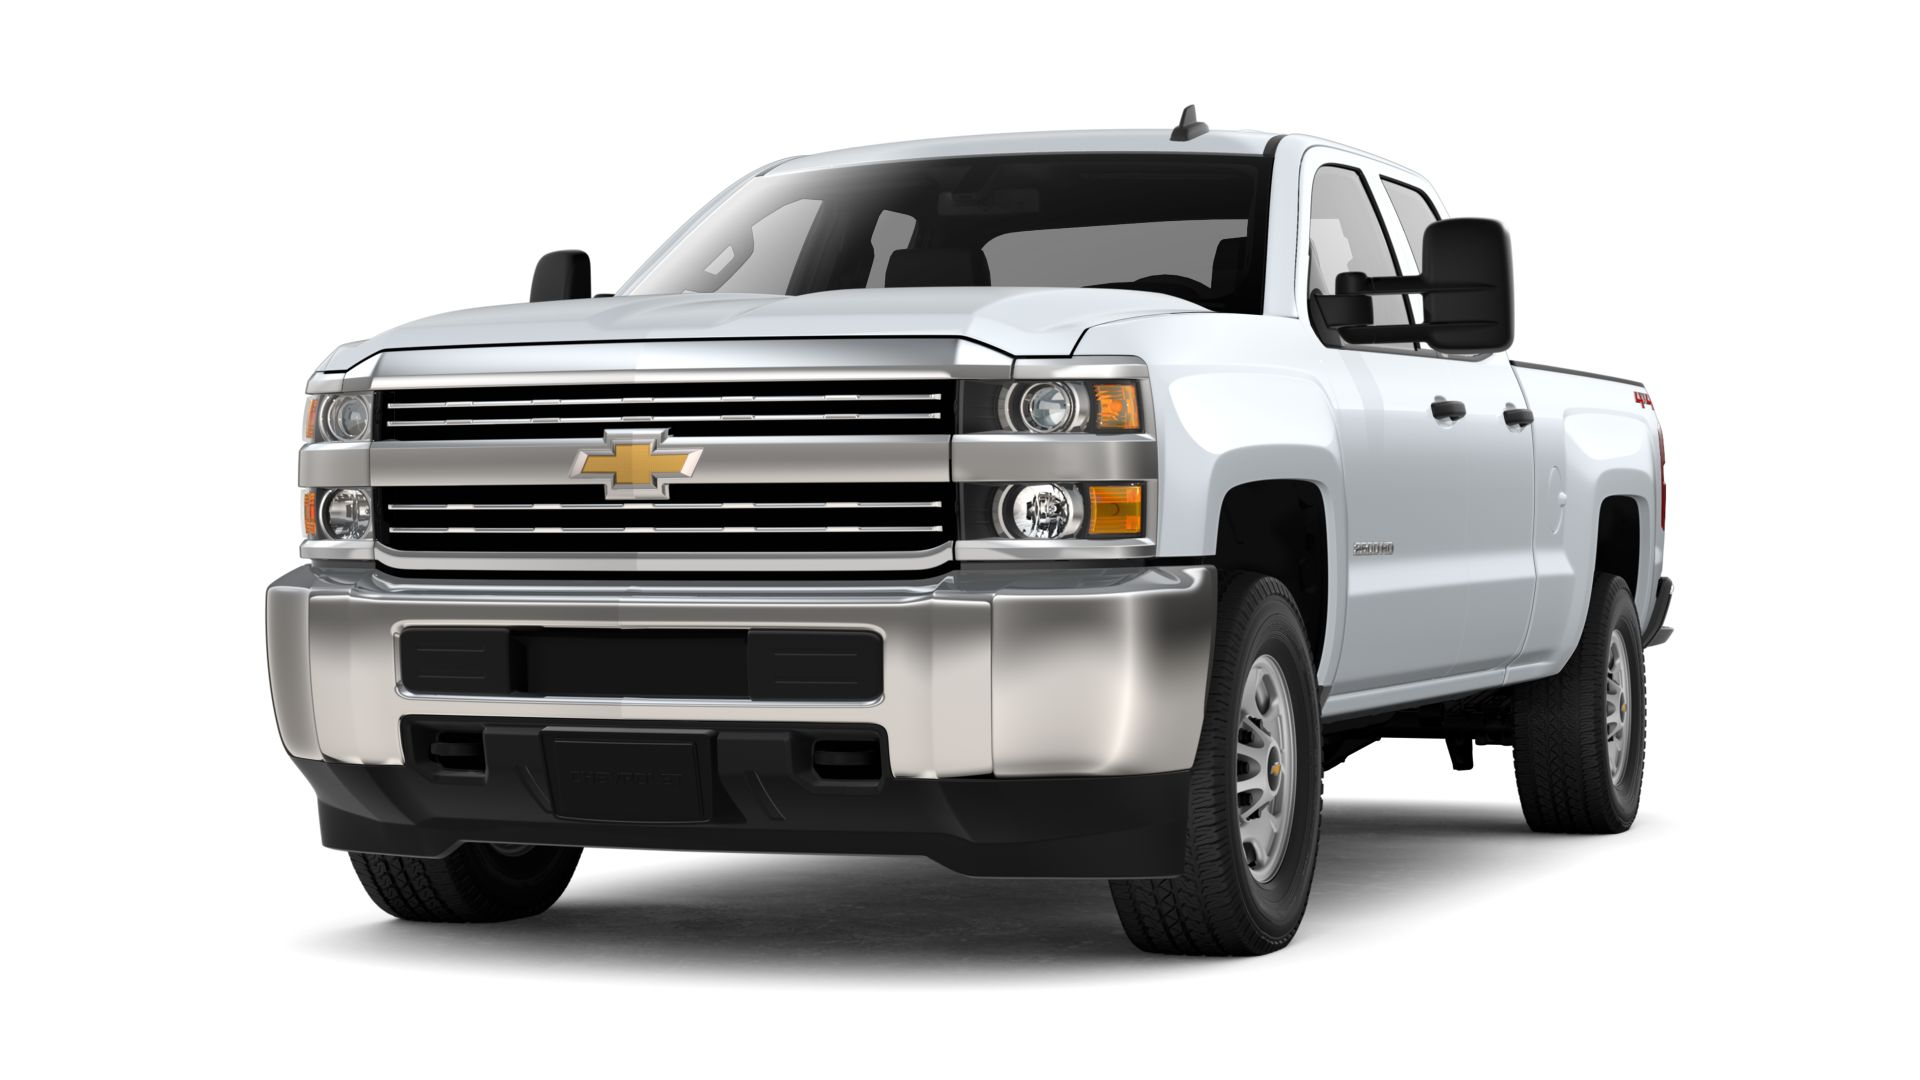 New 2019 Chevrolet Silverado 2500 HD WT FOUR WHEEL DRIVE Double Cab